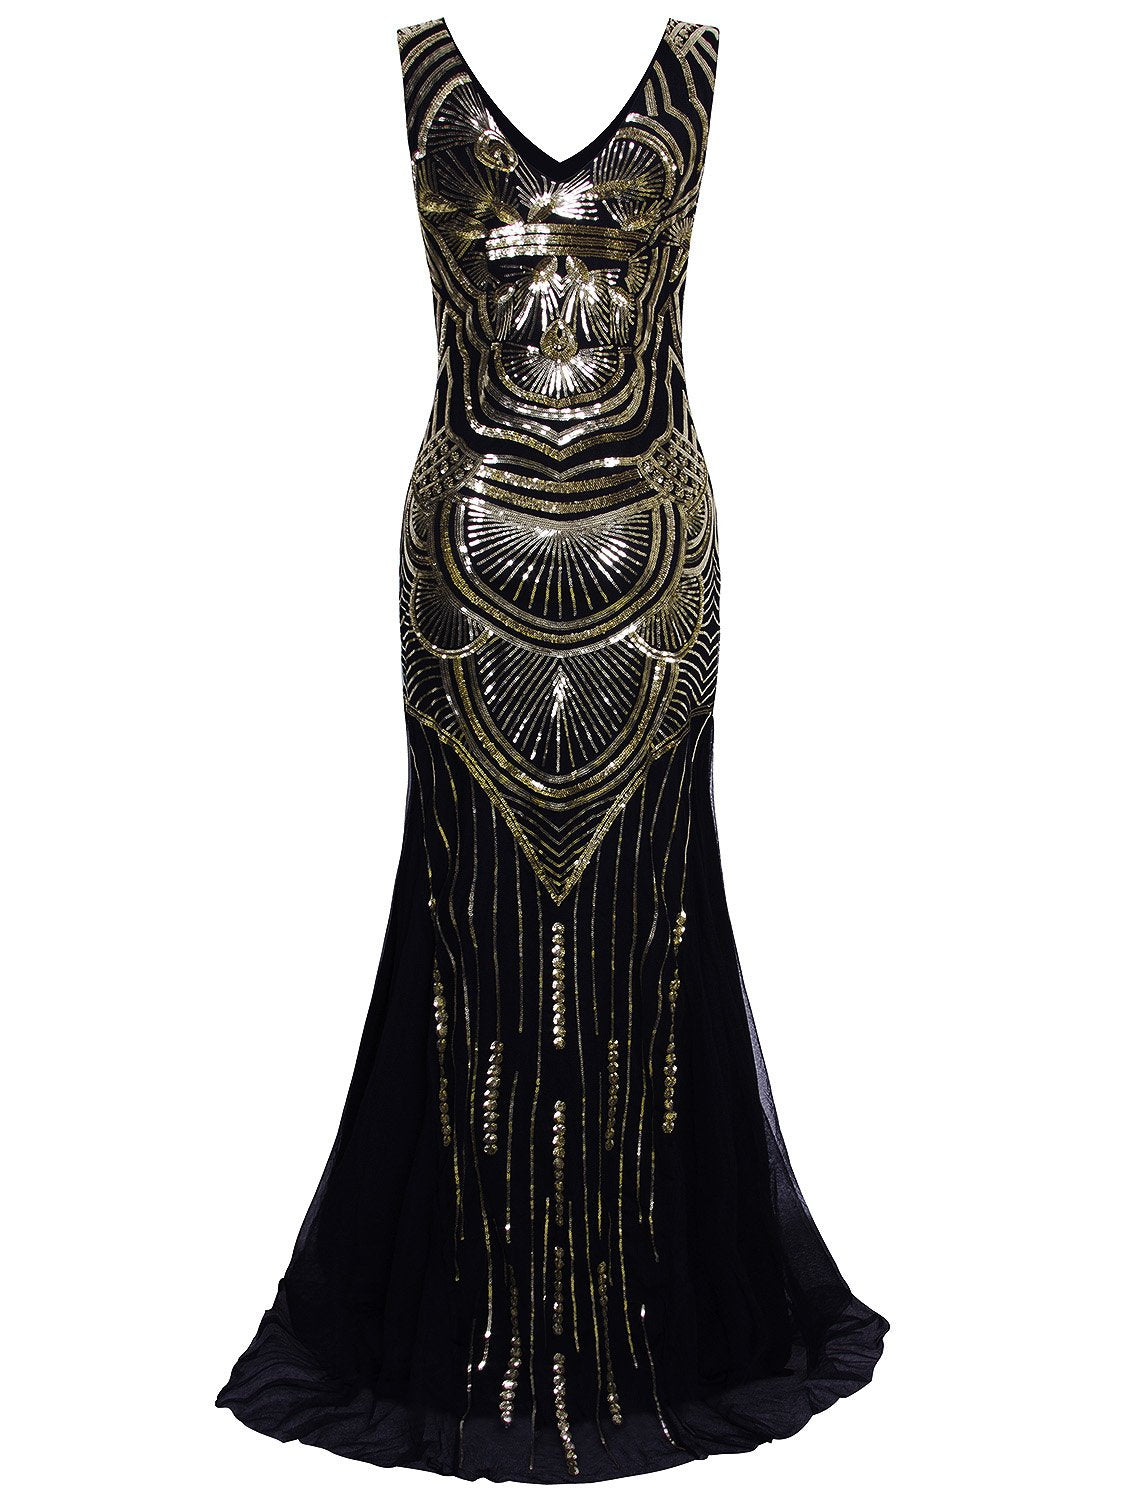 1920s Long Masquerade Maxi Peaky Blinders Prom Great Gatsby Vintage Gowns Sequin Embellished Evening Dress Black and Gold